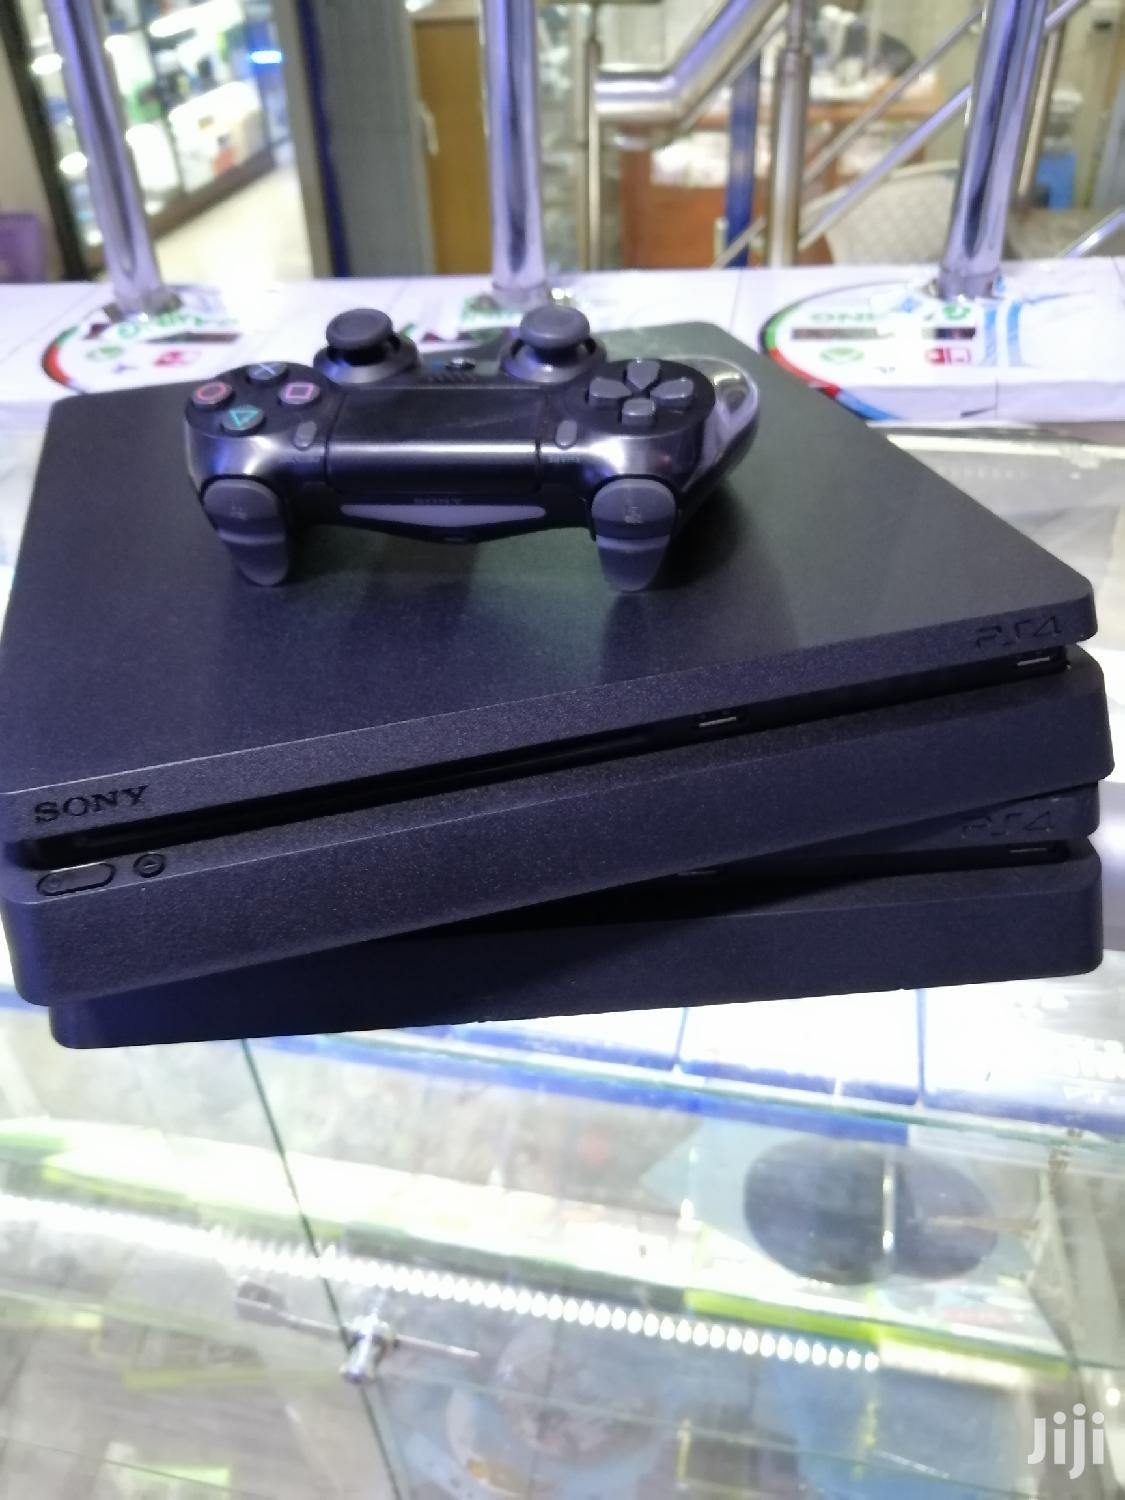 Archive: Playstation 4 Console